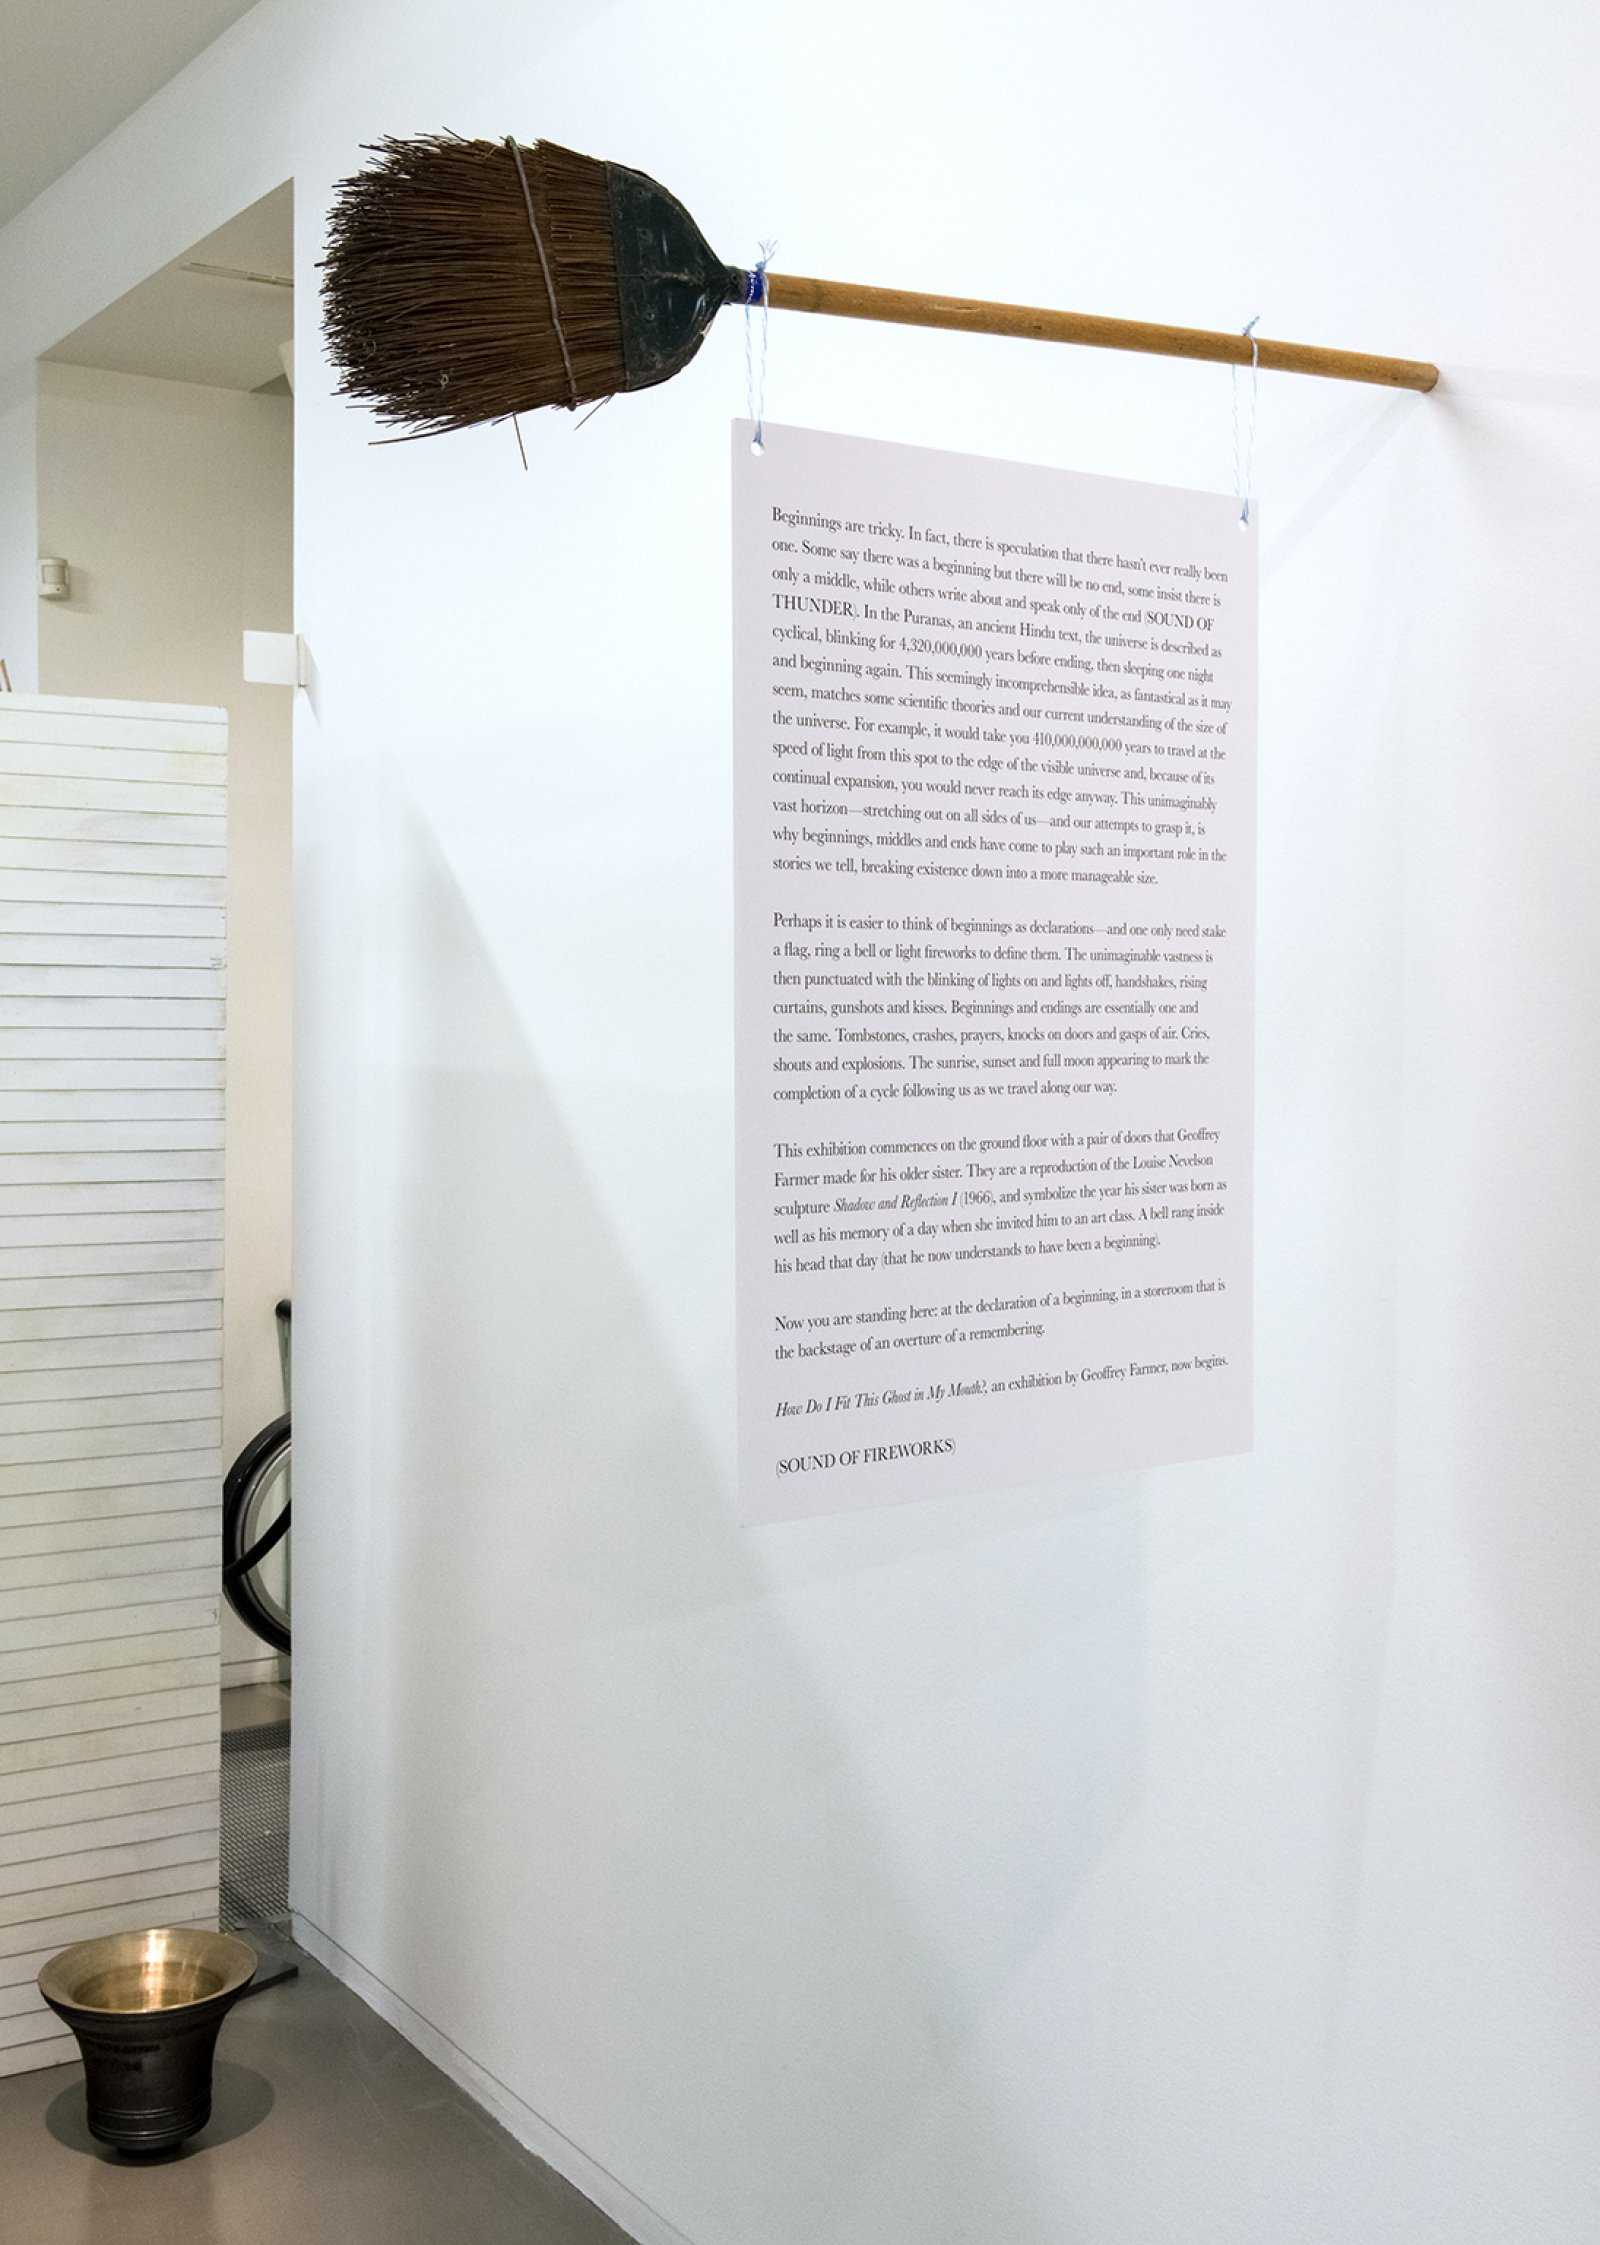 Farmer Storeroom Overture 2015 How Do I Fit This Ghost In My Mouth Vag 2015 Install 08 by Geoffrey Farmer